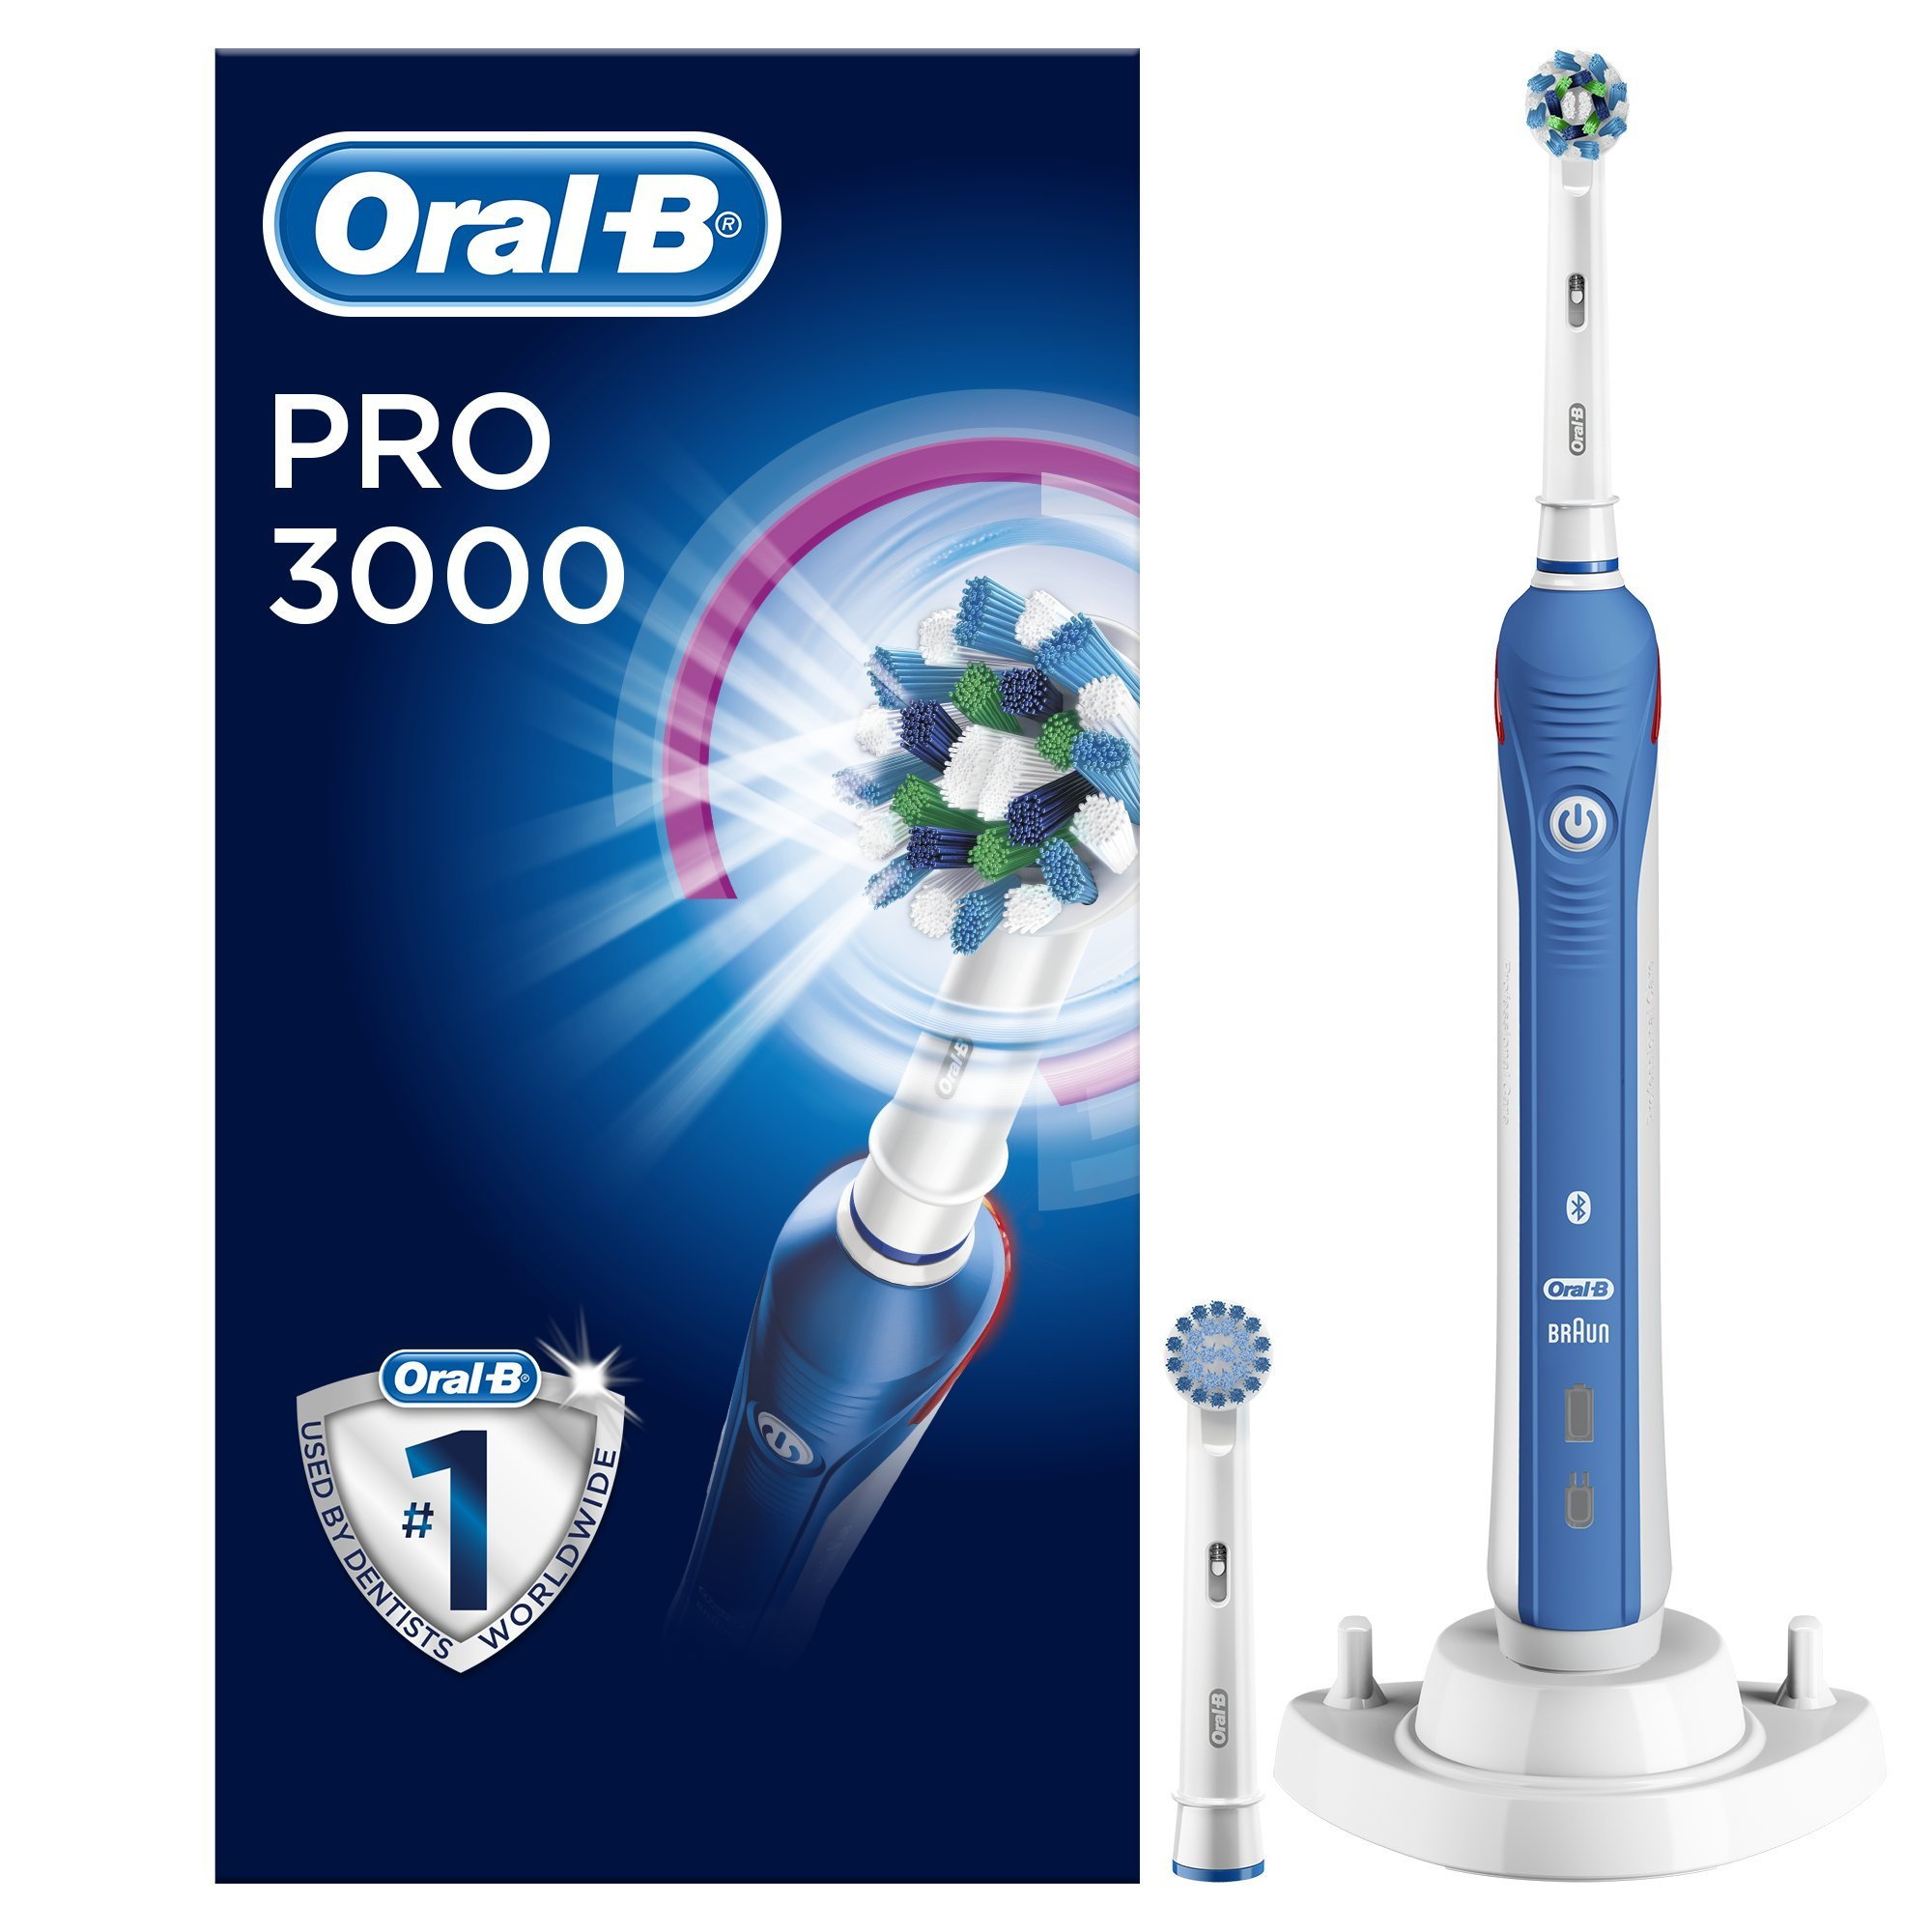 Oral-B Pro 3000 CrossAction Electric Toothbrush Rechargeable Powered by Braun